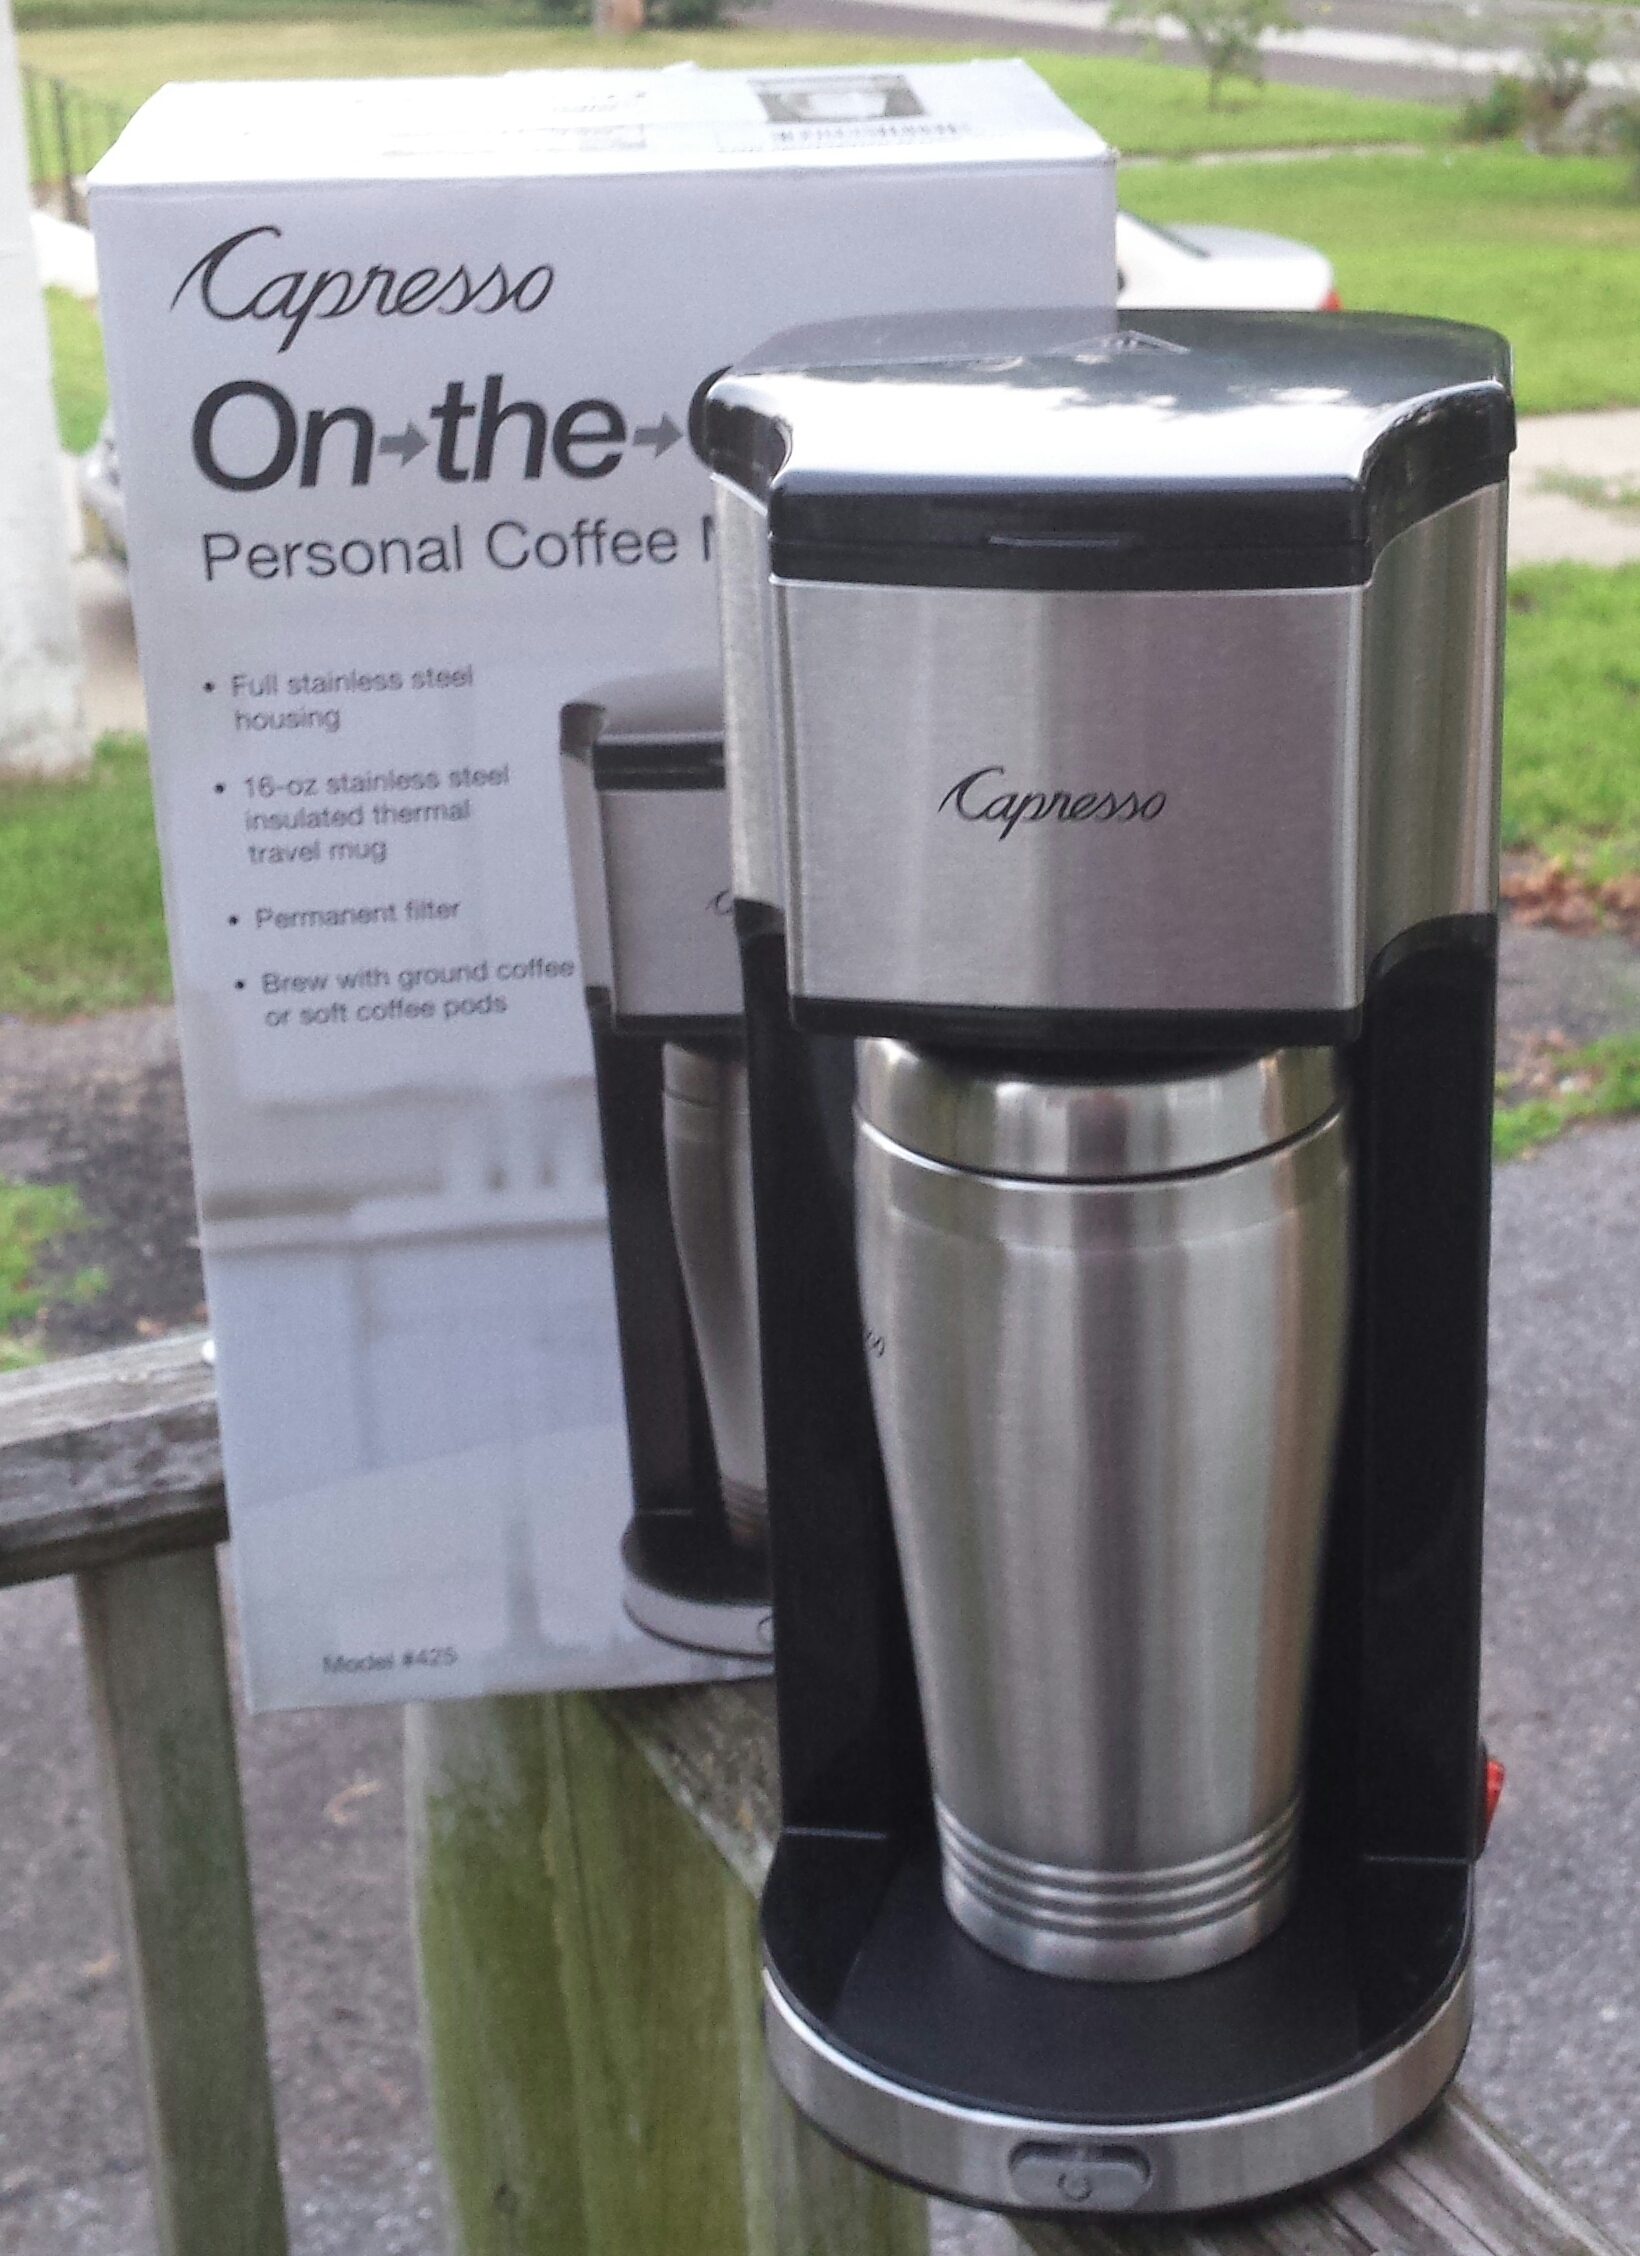 Capresso On-the-Go Personal Coffee Maker for #Back2School - BB Product Reviews